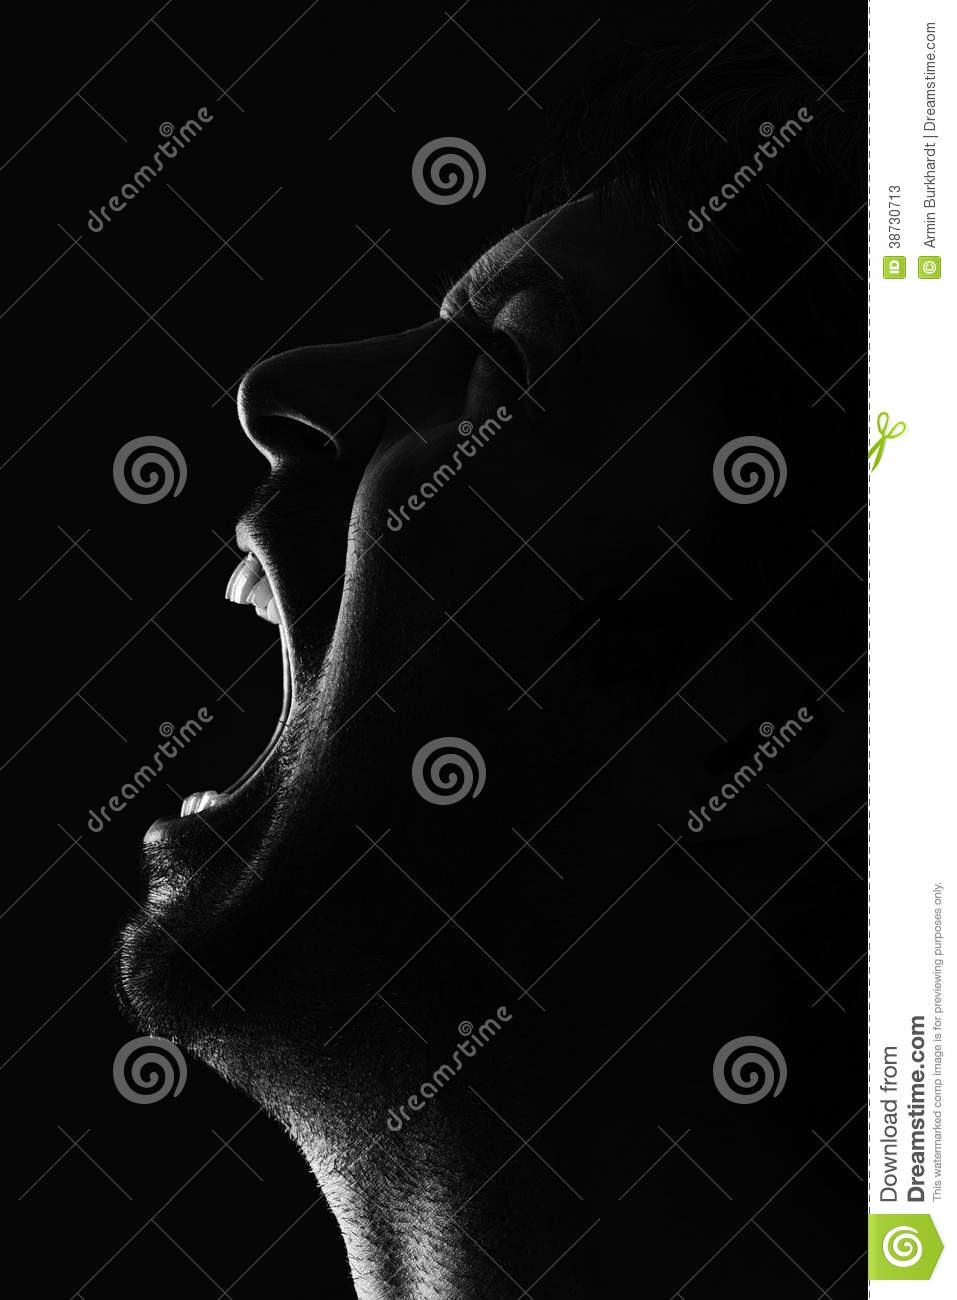 Man crying out